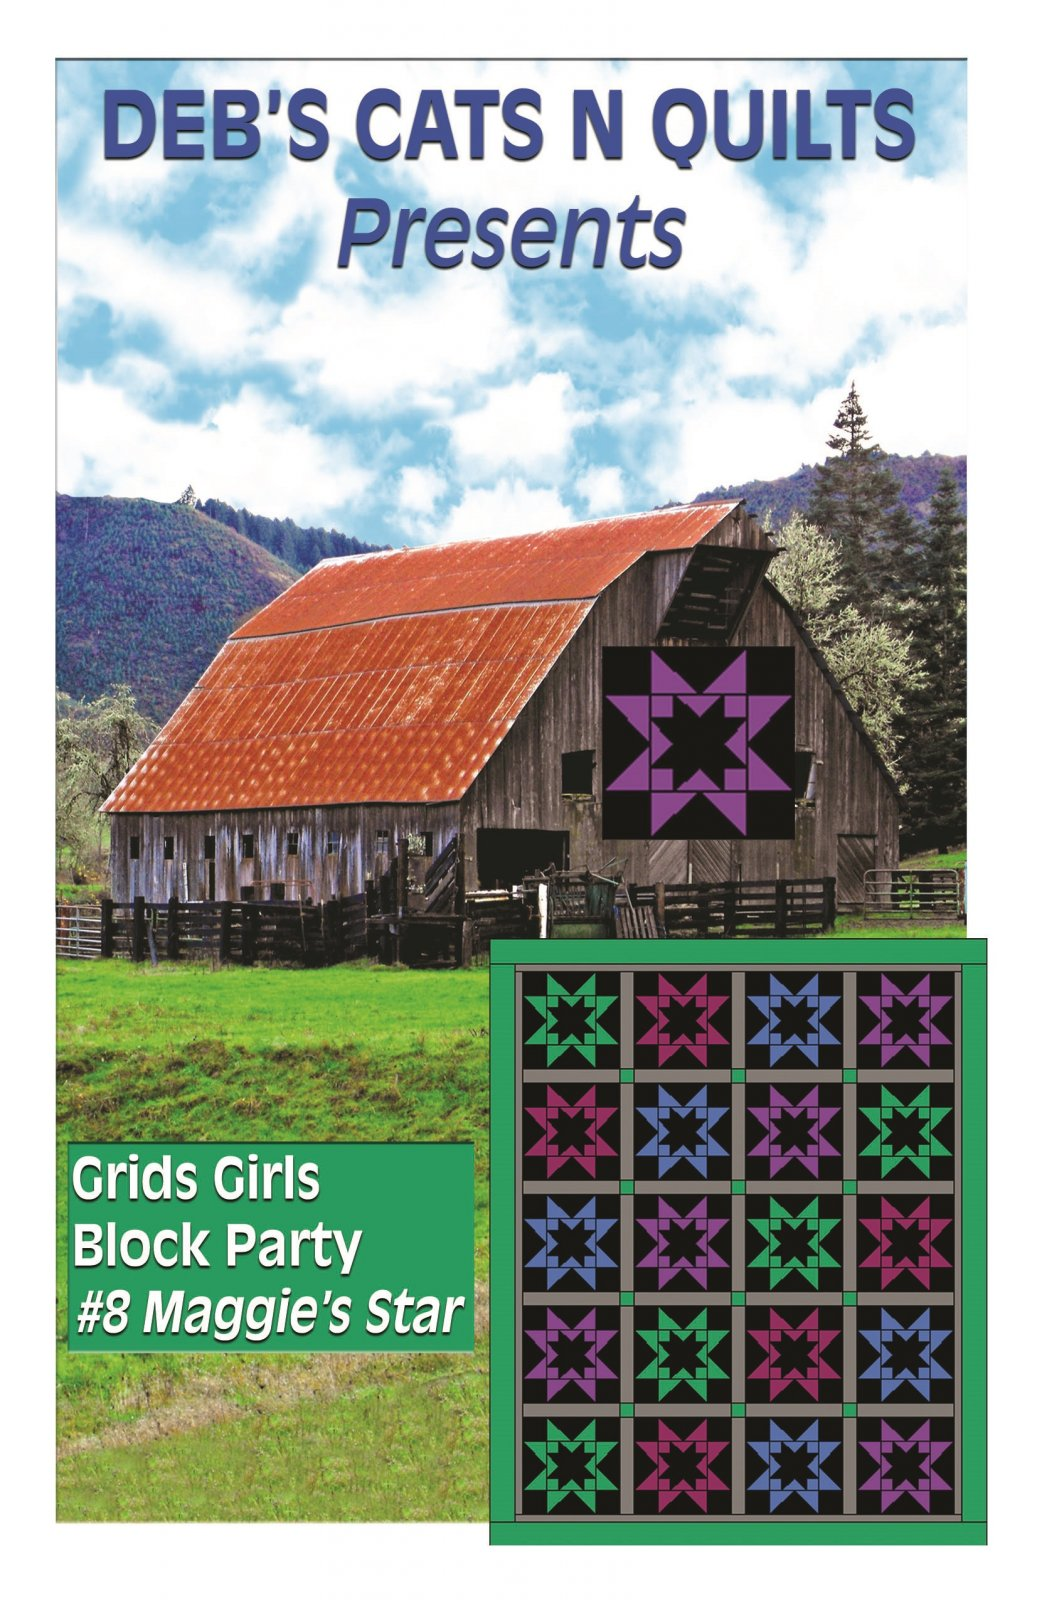 Maggie's Star- Grids Girls Block Party # 8